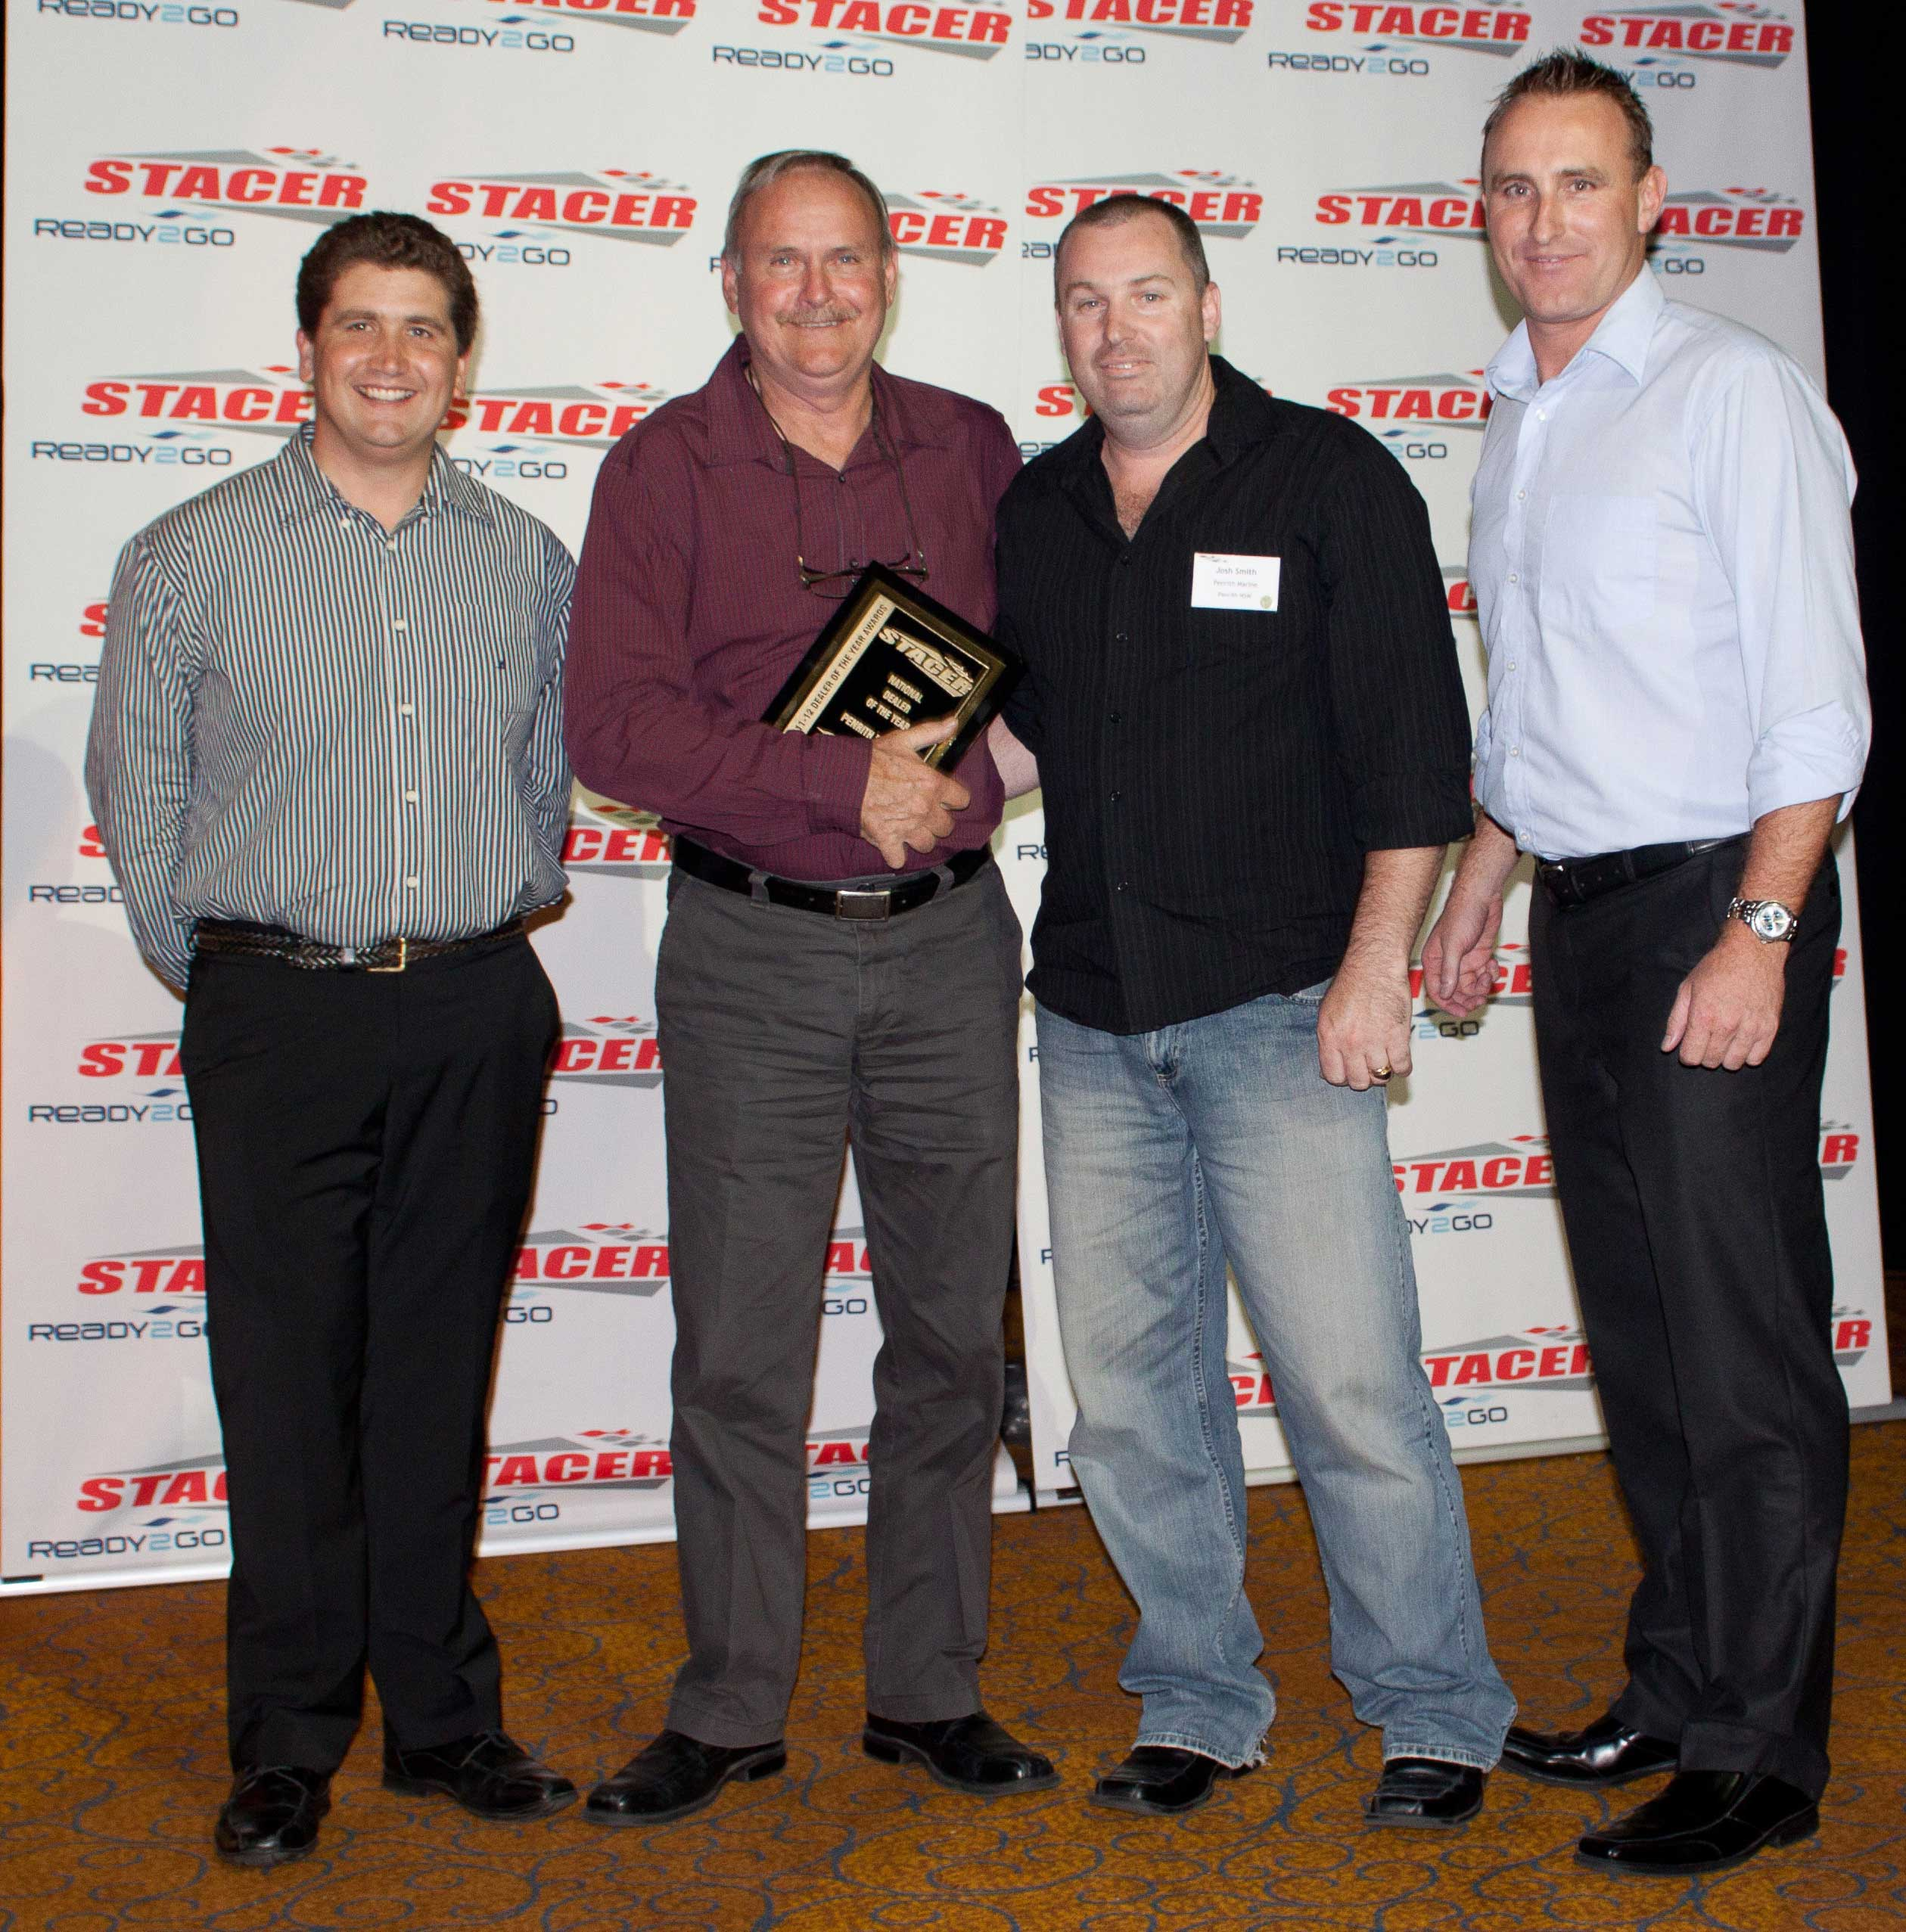 Stacer Dealer of the Year for 2012 - Penrith Marine